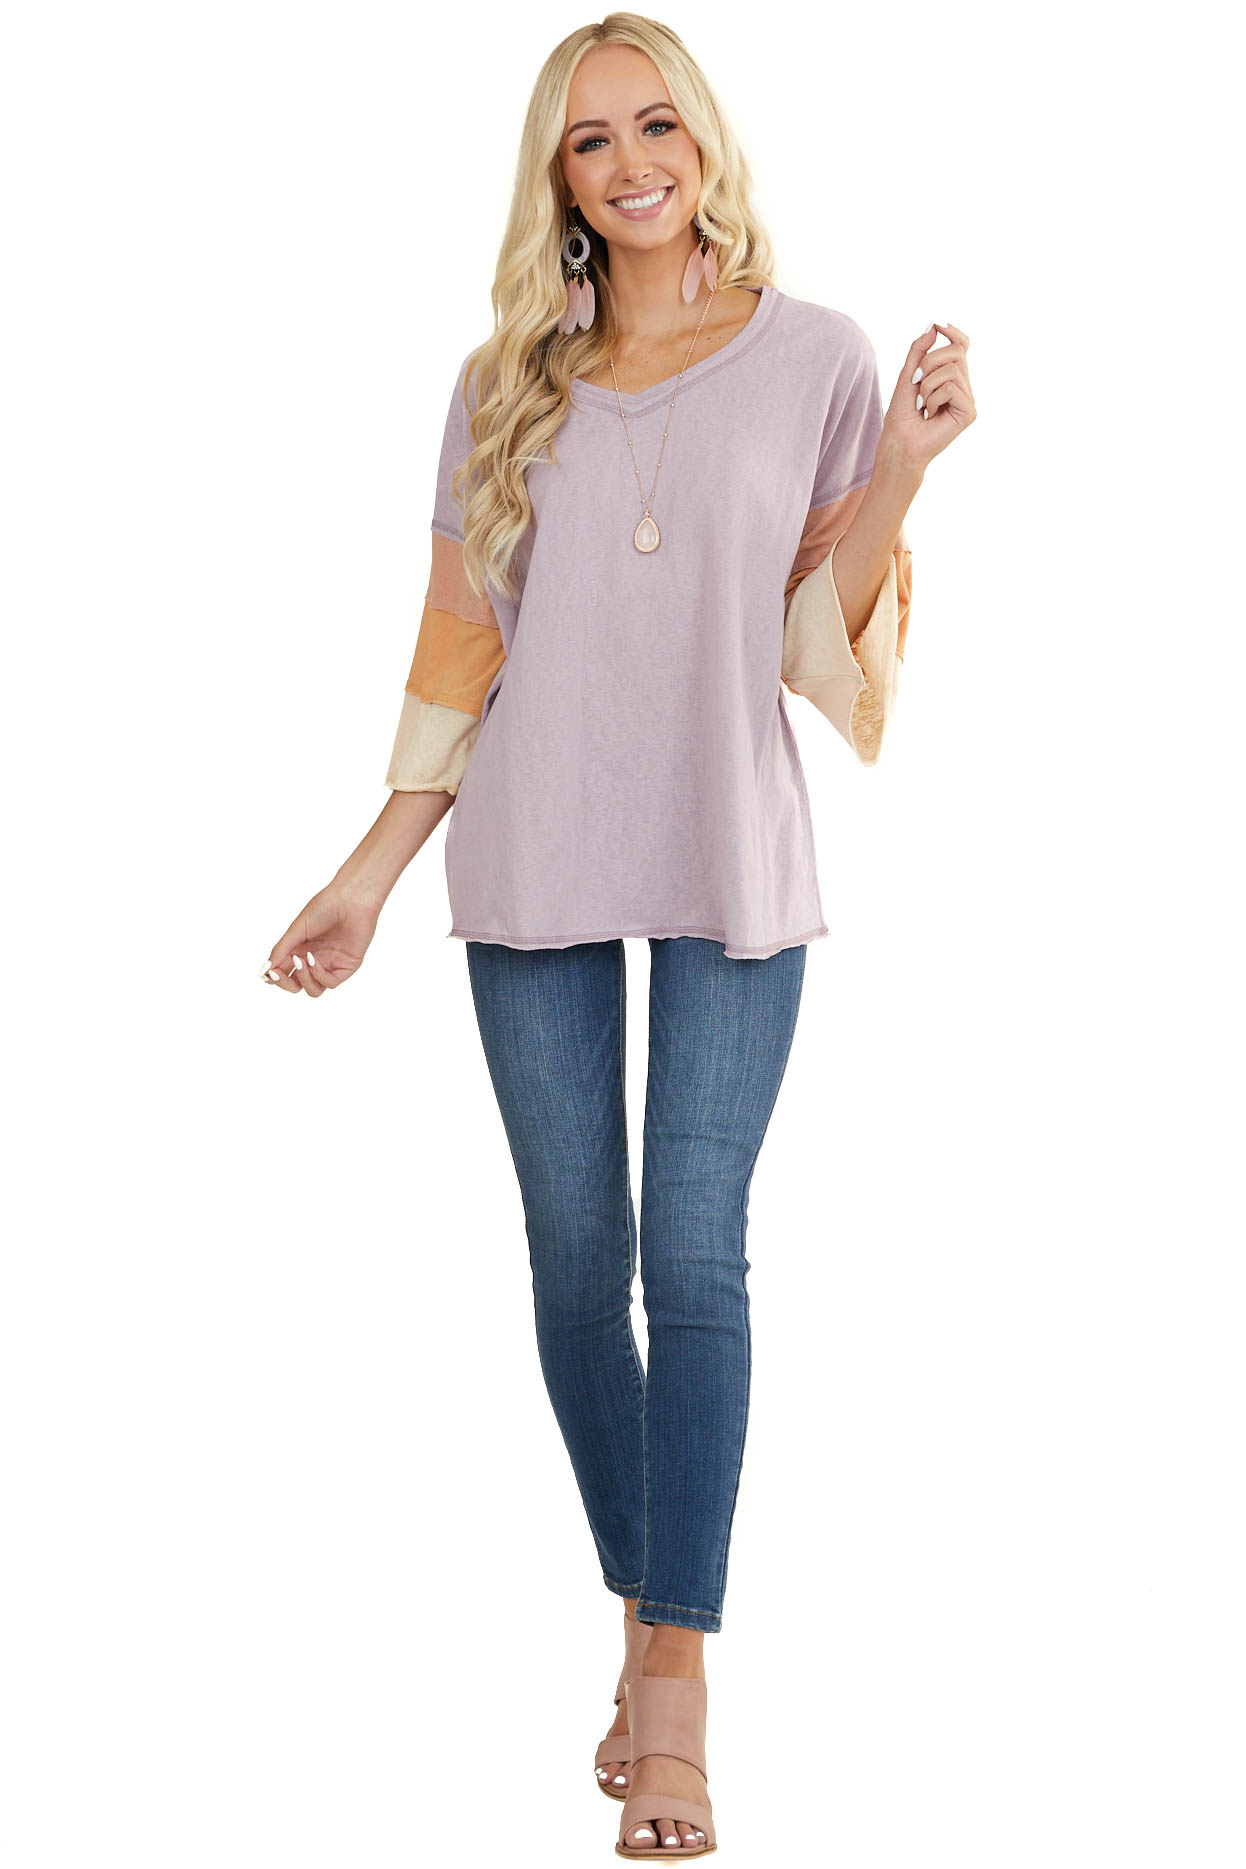 Lavender Oversized Top with Multicolor 3/4 Length Sleeves